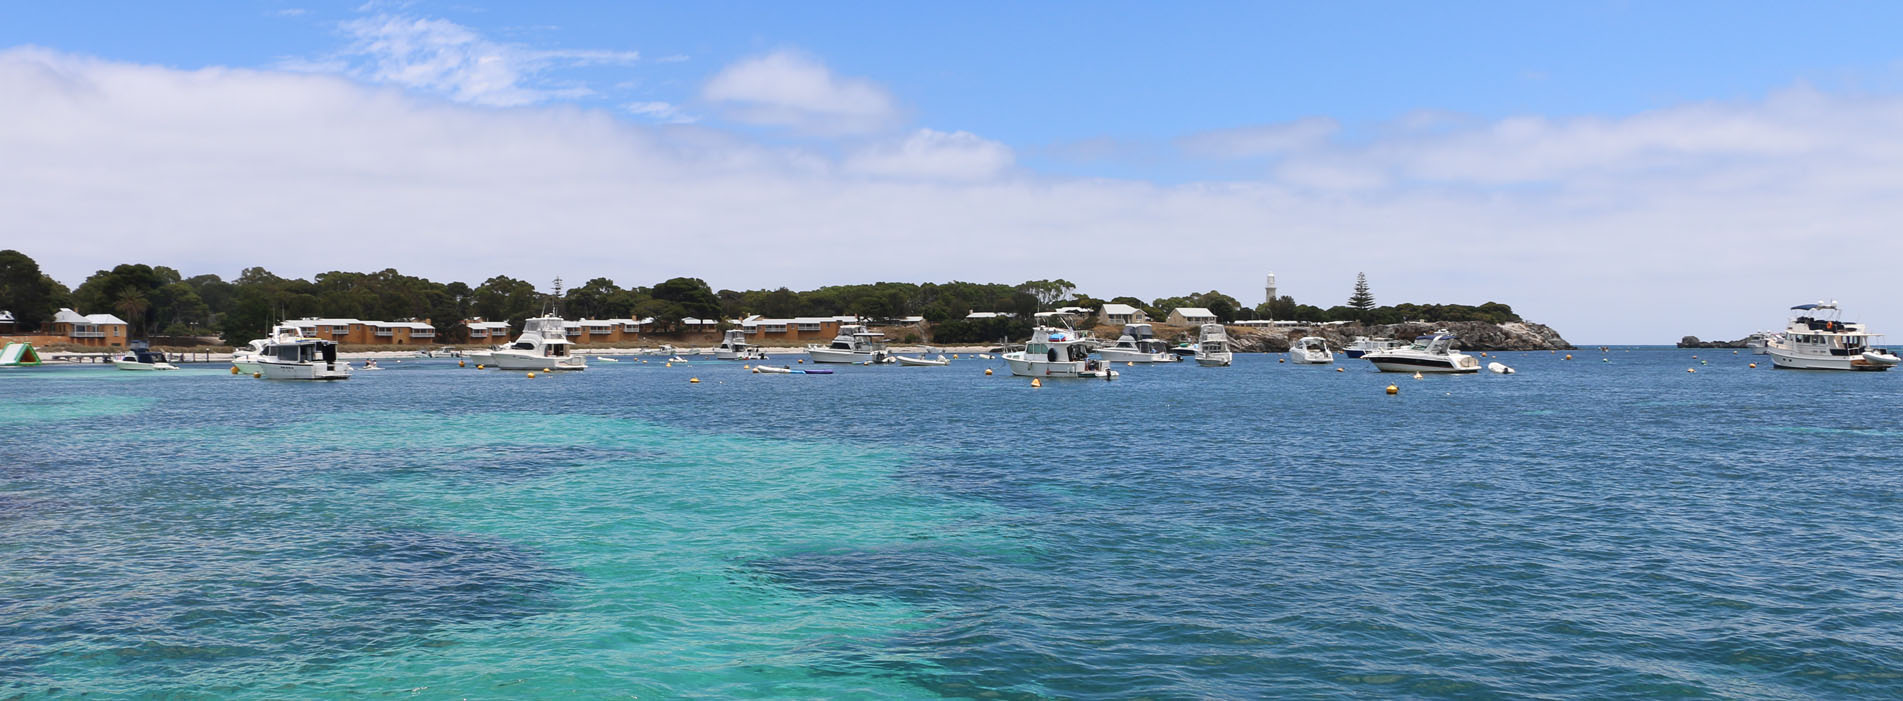 OVERNIGHT WEEKEND trips to Rottnest